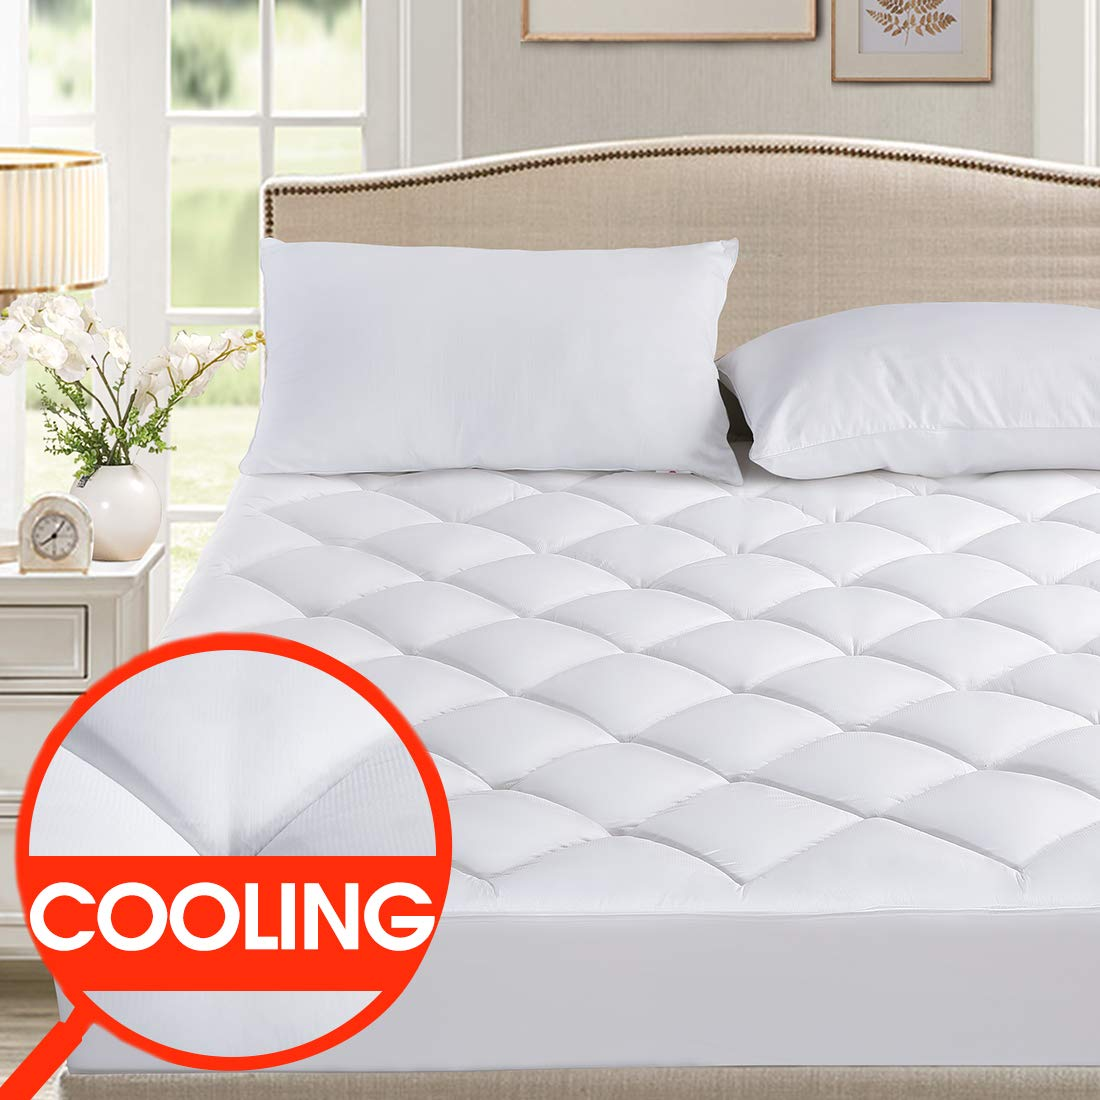 SOPAT King Mattress Pad Cover - Cooling Pillow Top Plush Mattress Topper Reversible Quilted Fitted Mattress Protector with 8-21 inch Deep Pocket for Summer